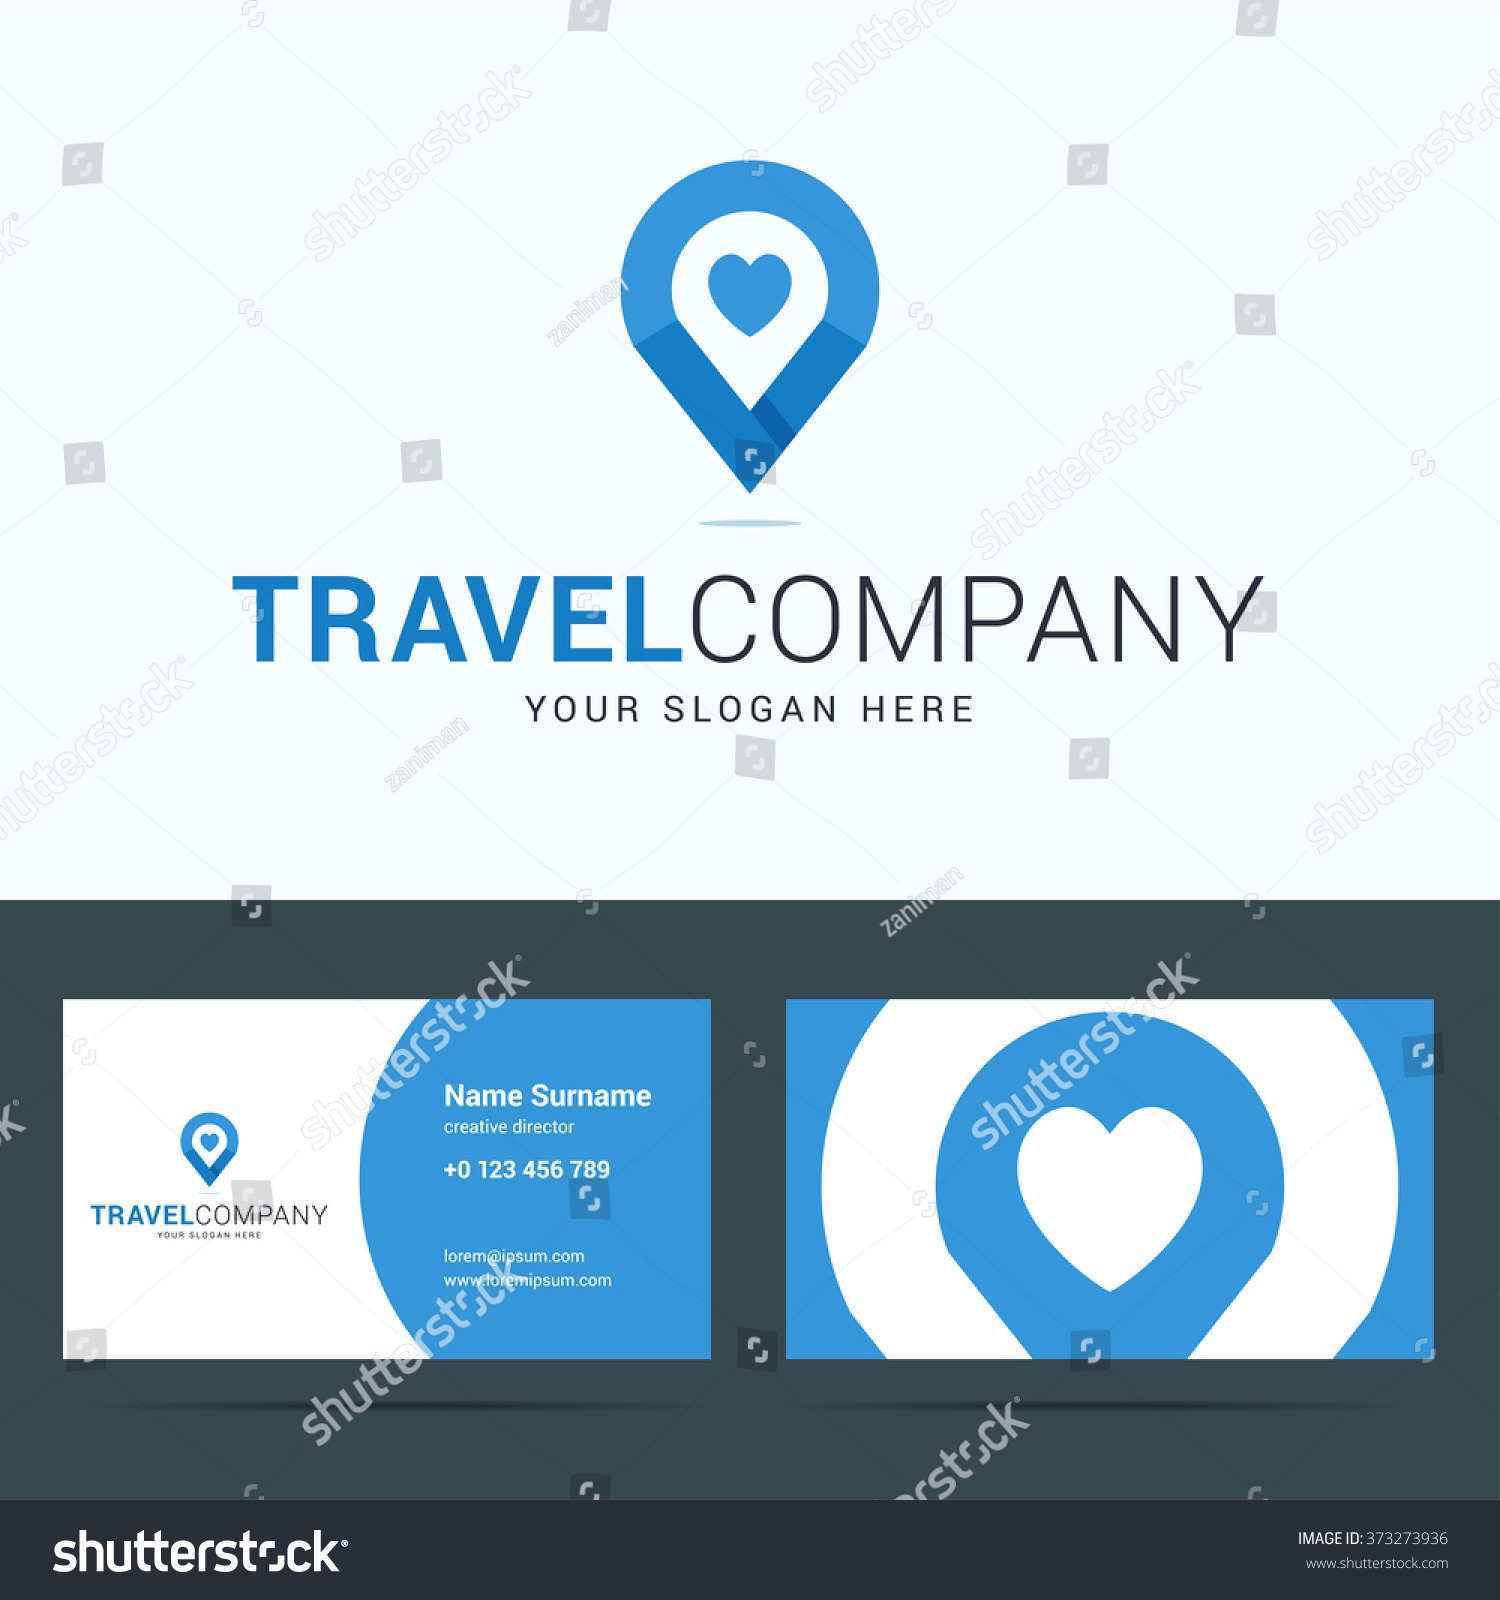 Travel business card templates mandegarfo travel business card templates accmission Image collections